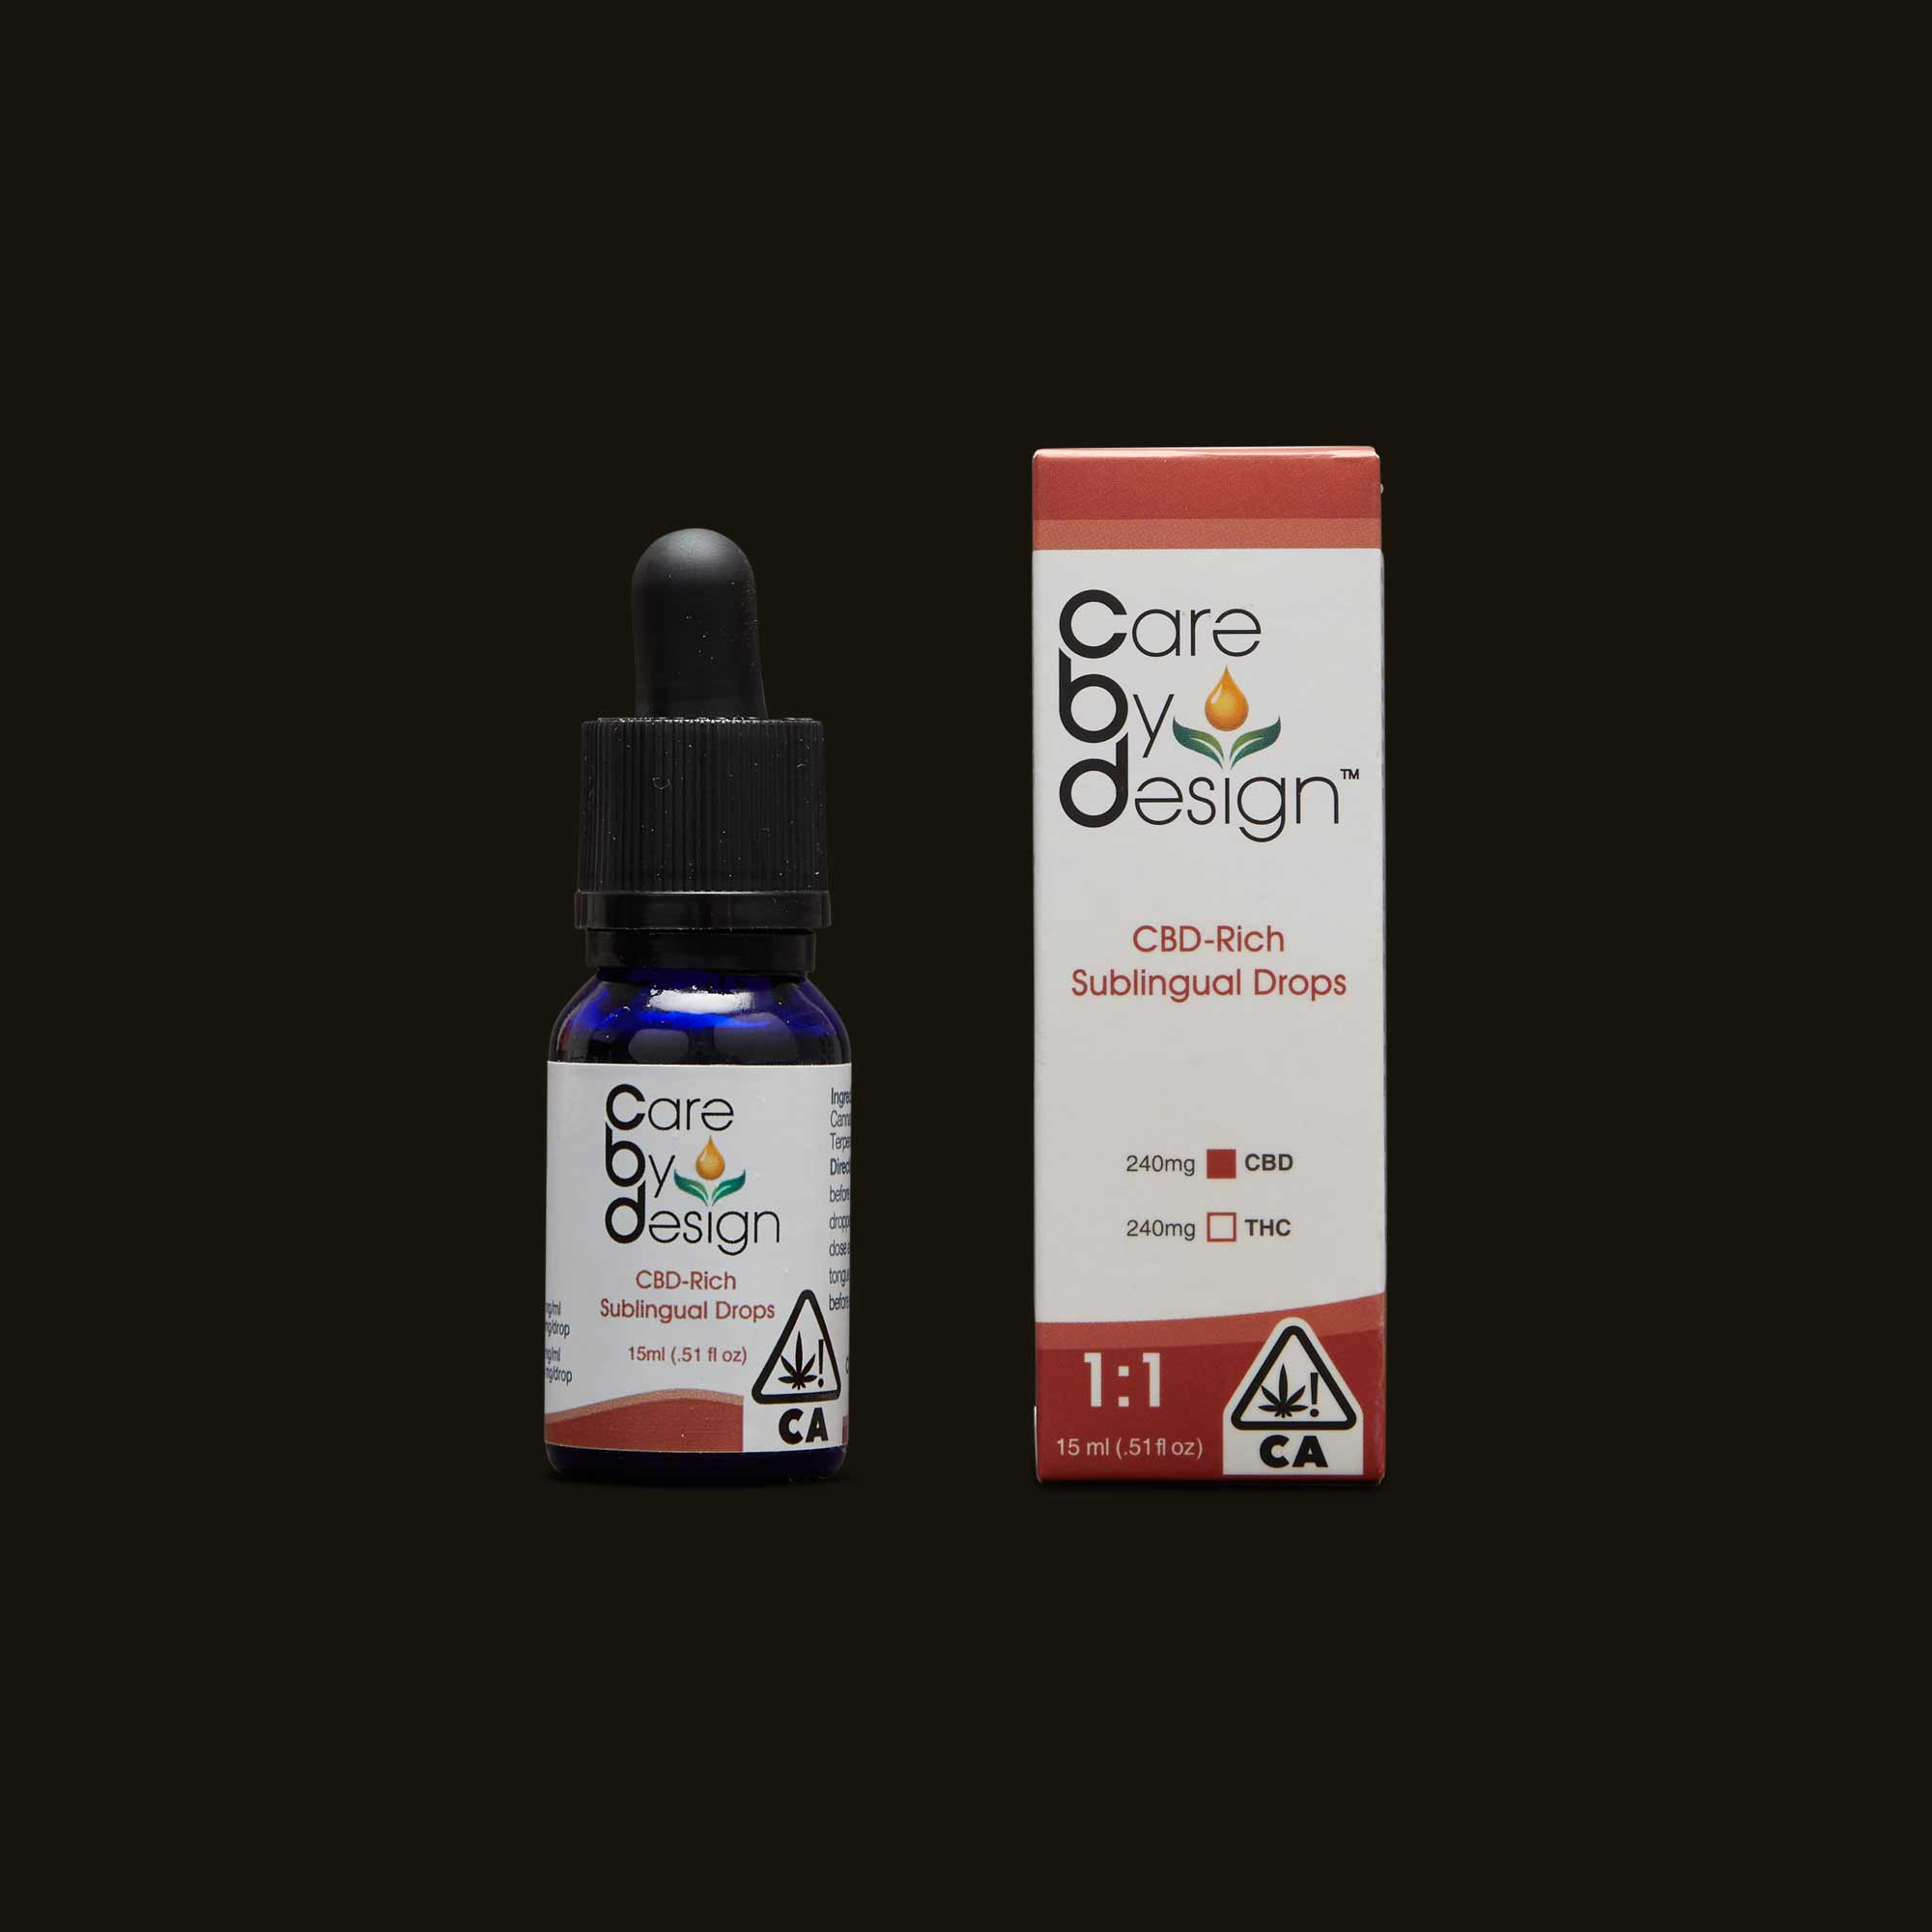 Care by Design bottle of drops with package